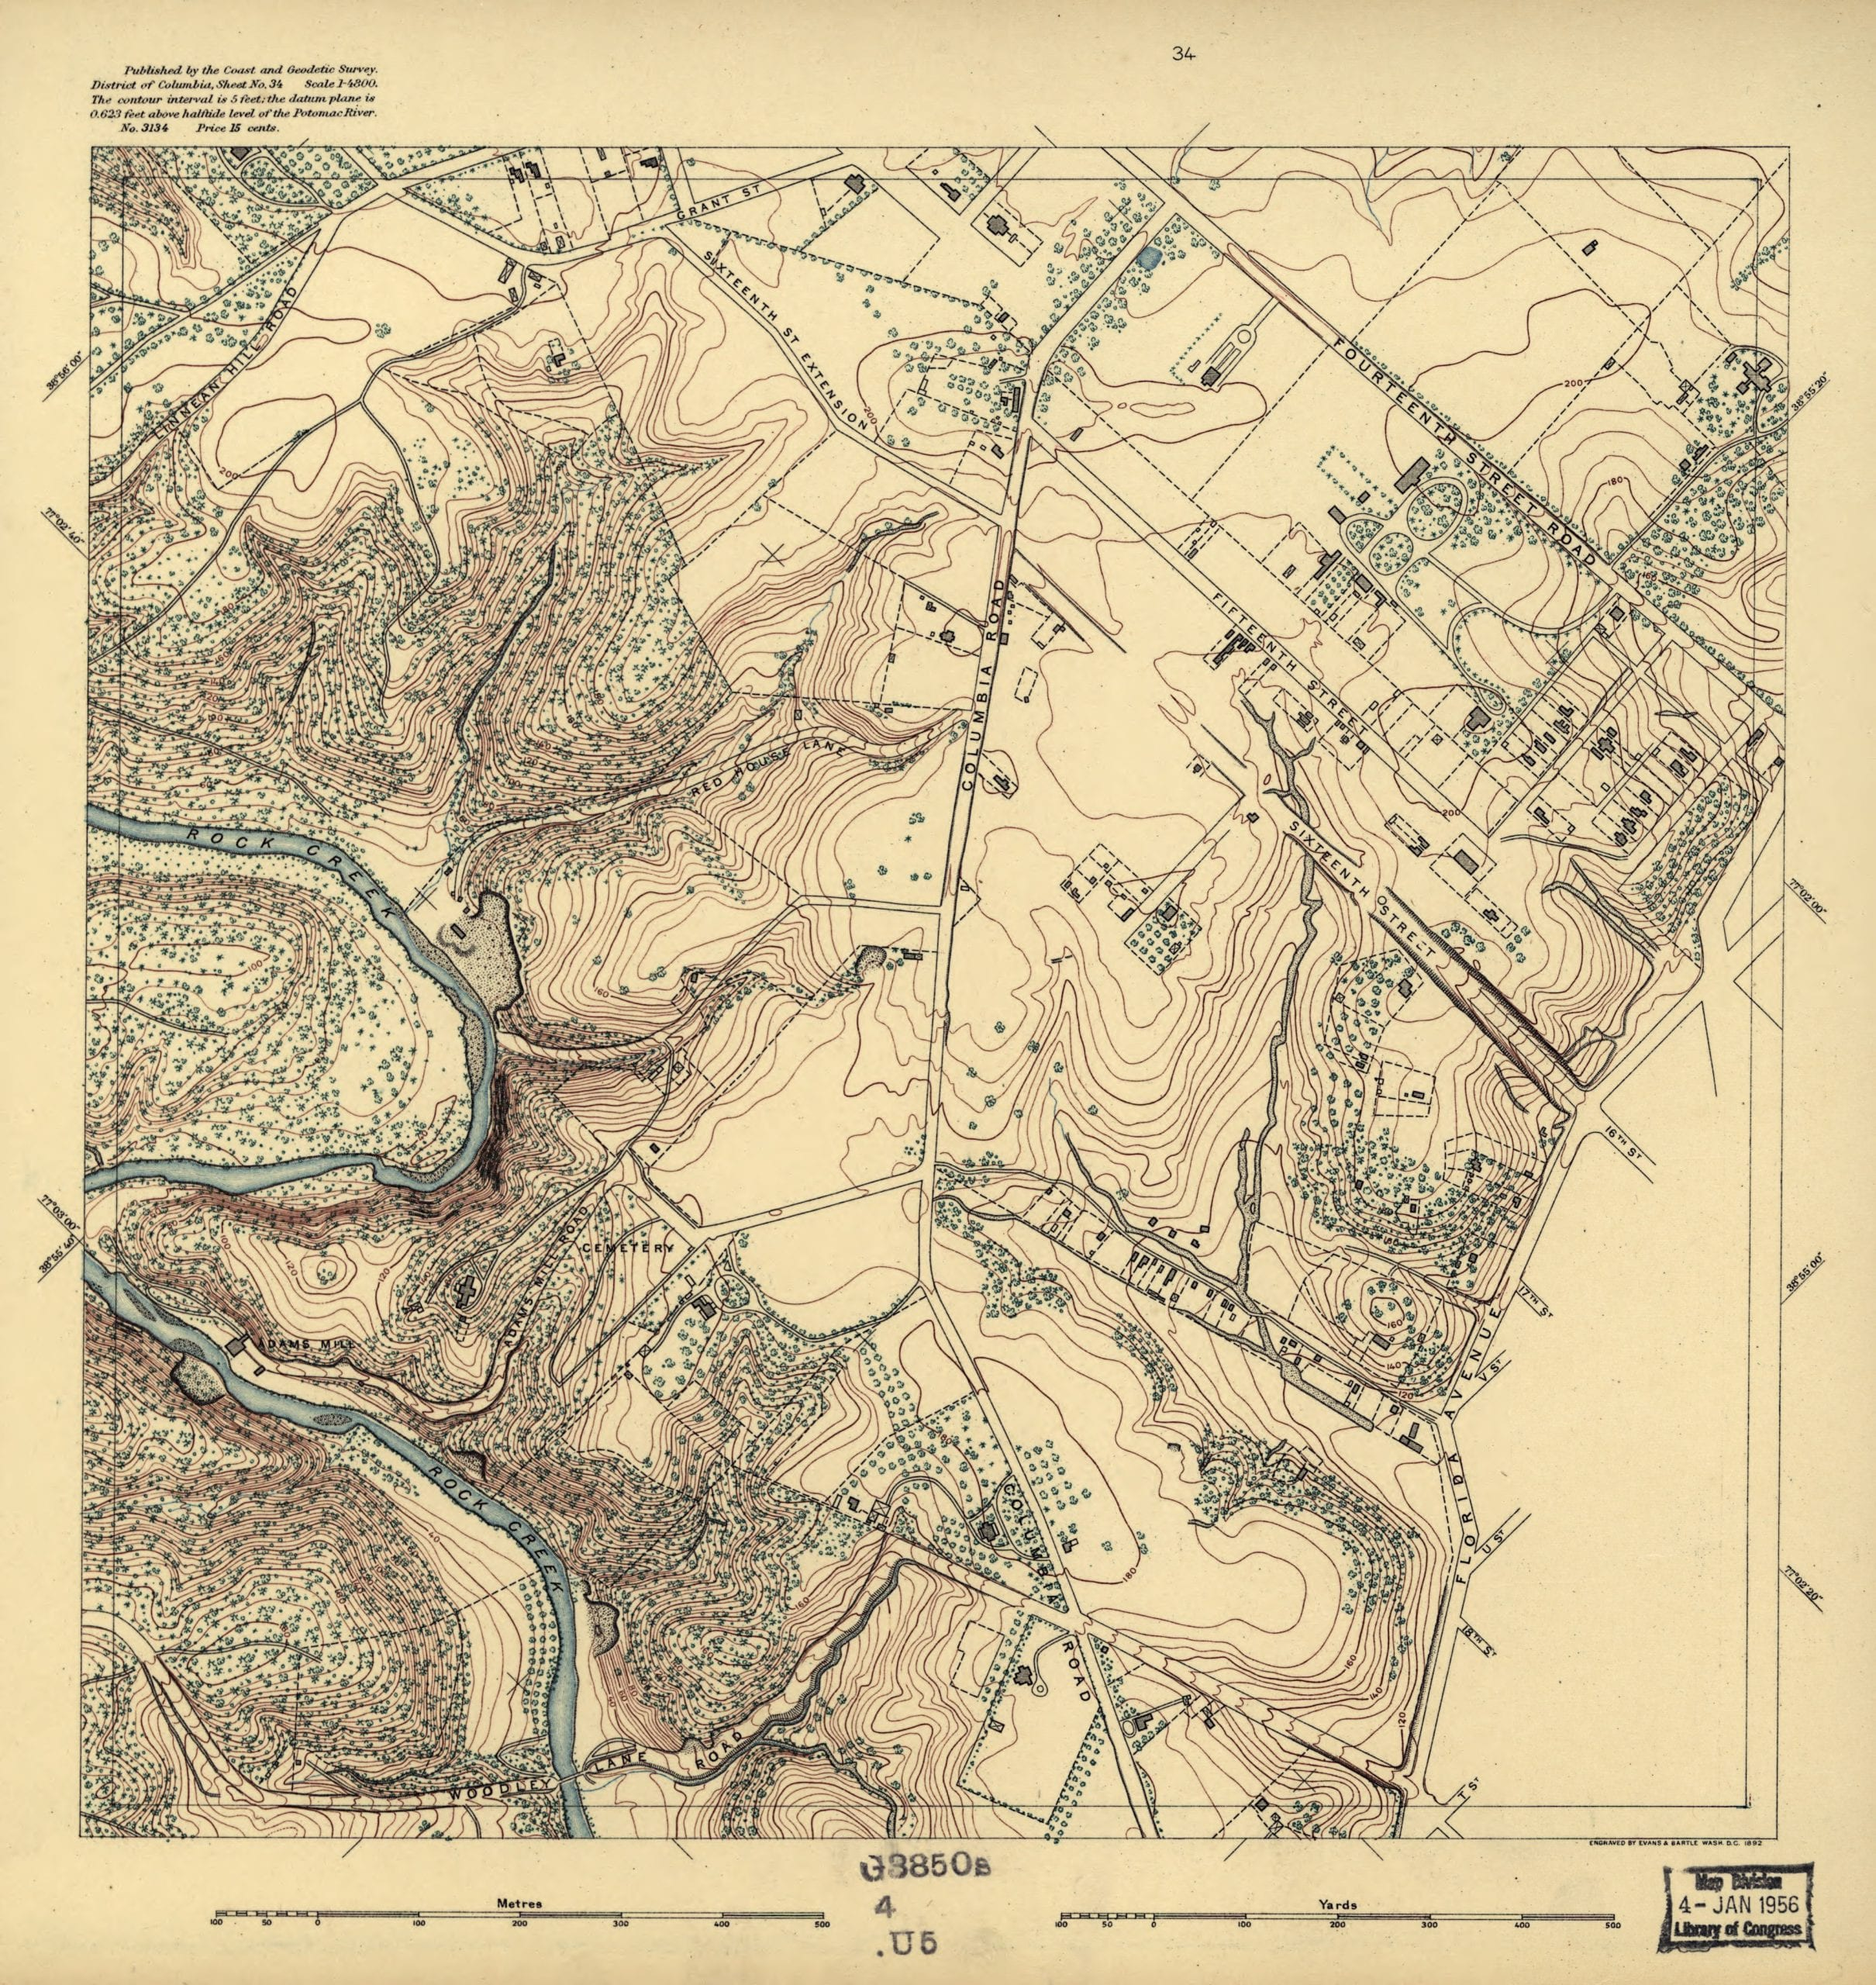 Topographic map showing lot lines, buildings, and woods.  Covers District of Columbia outside former Washington city limits (Florida Avenue).